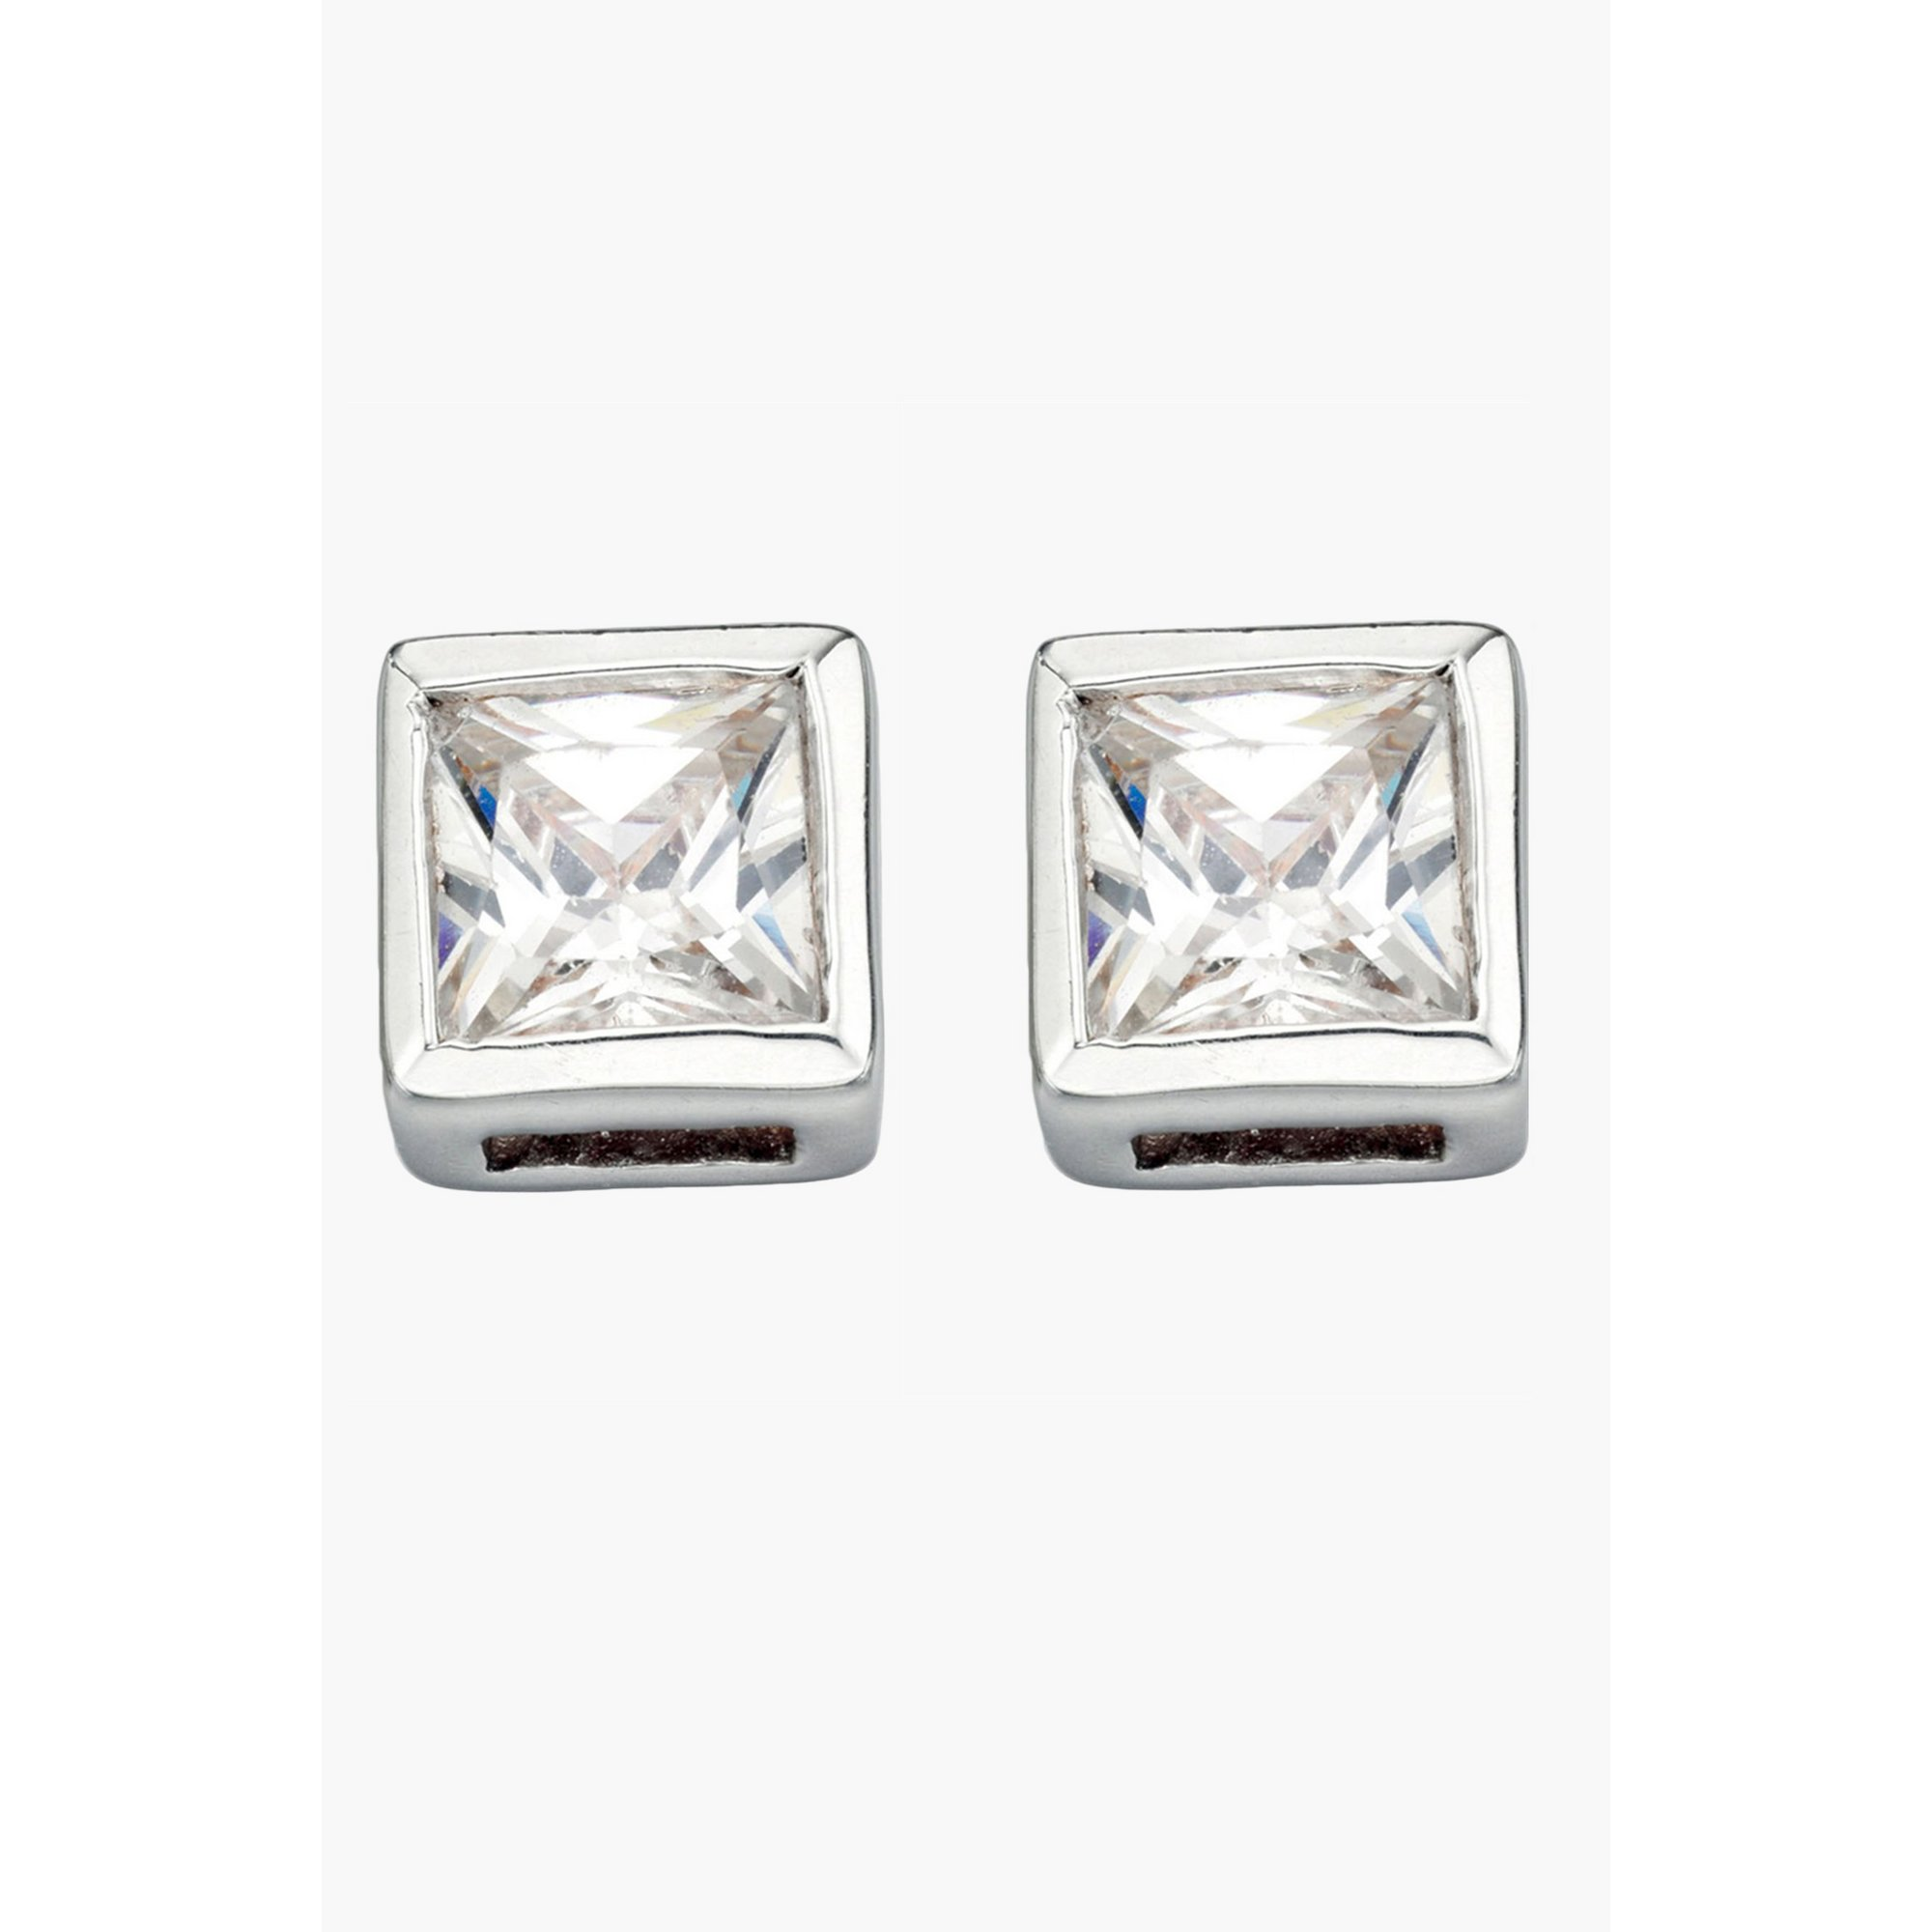 Image of Clear CZ Square Stud Earrings